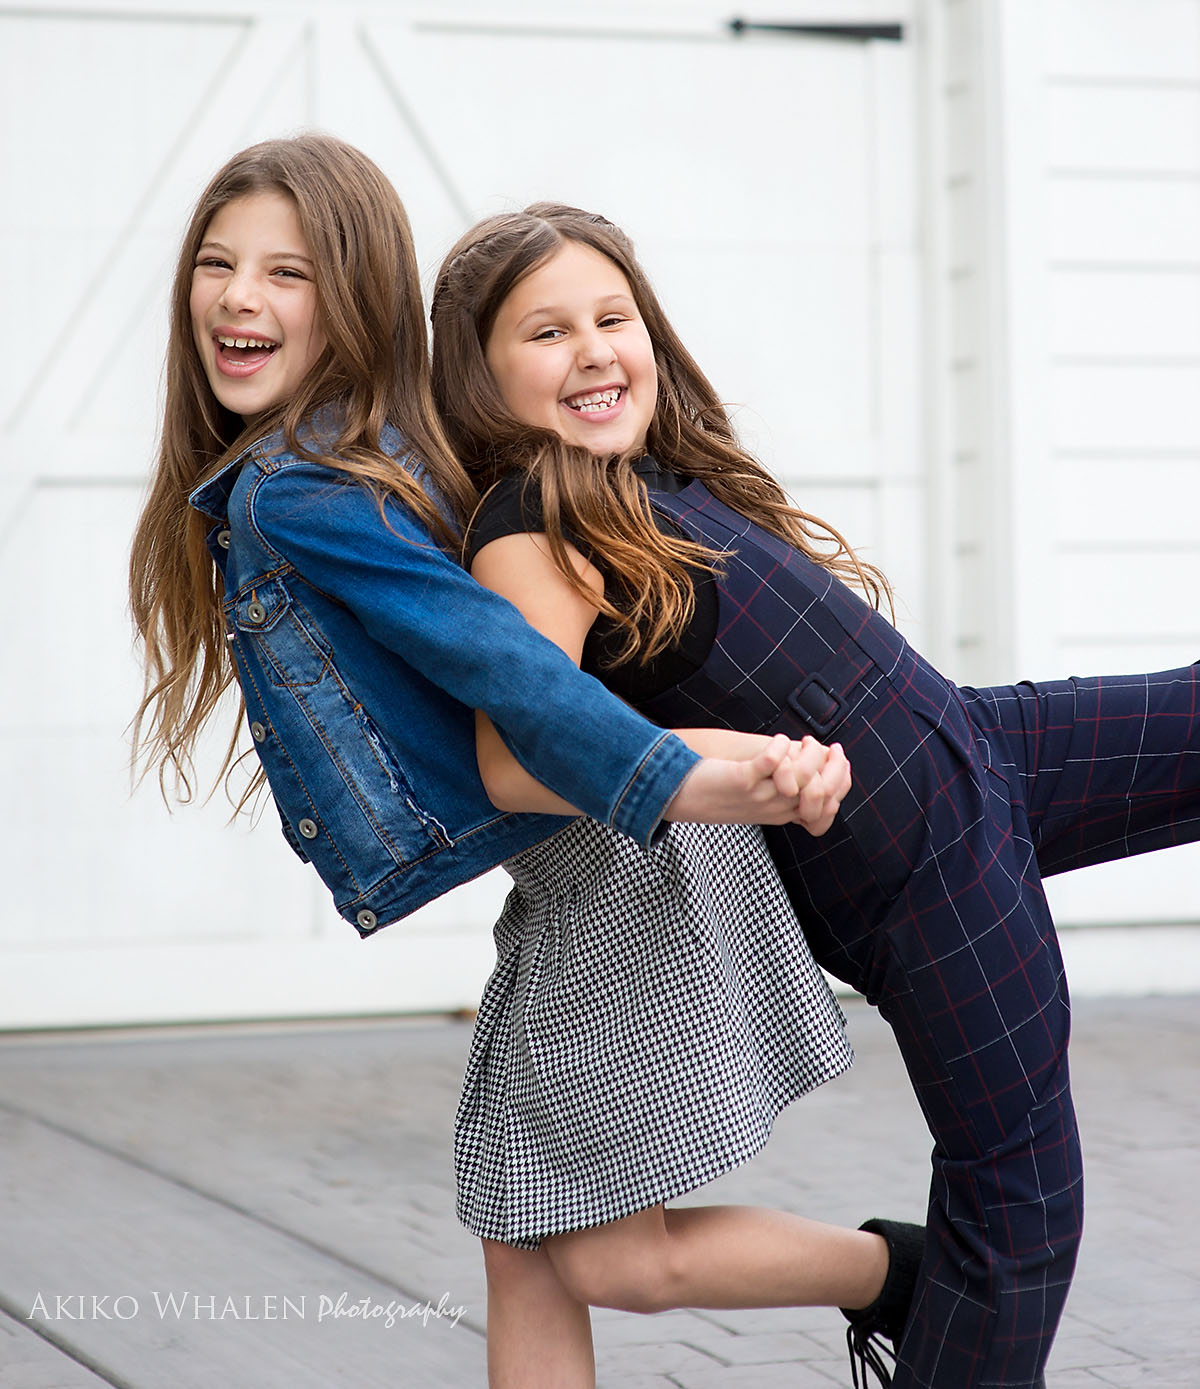 Modern Children Photographer in Los Angeles, Family portraits for holiday, on location photography, Akiko Whalen Photography, Pre teenage girls portraits, child headshots, autumn colors, sisters